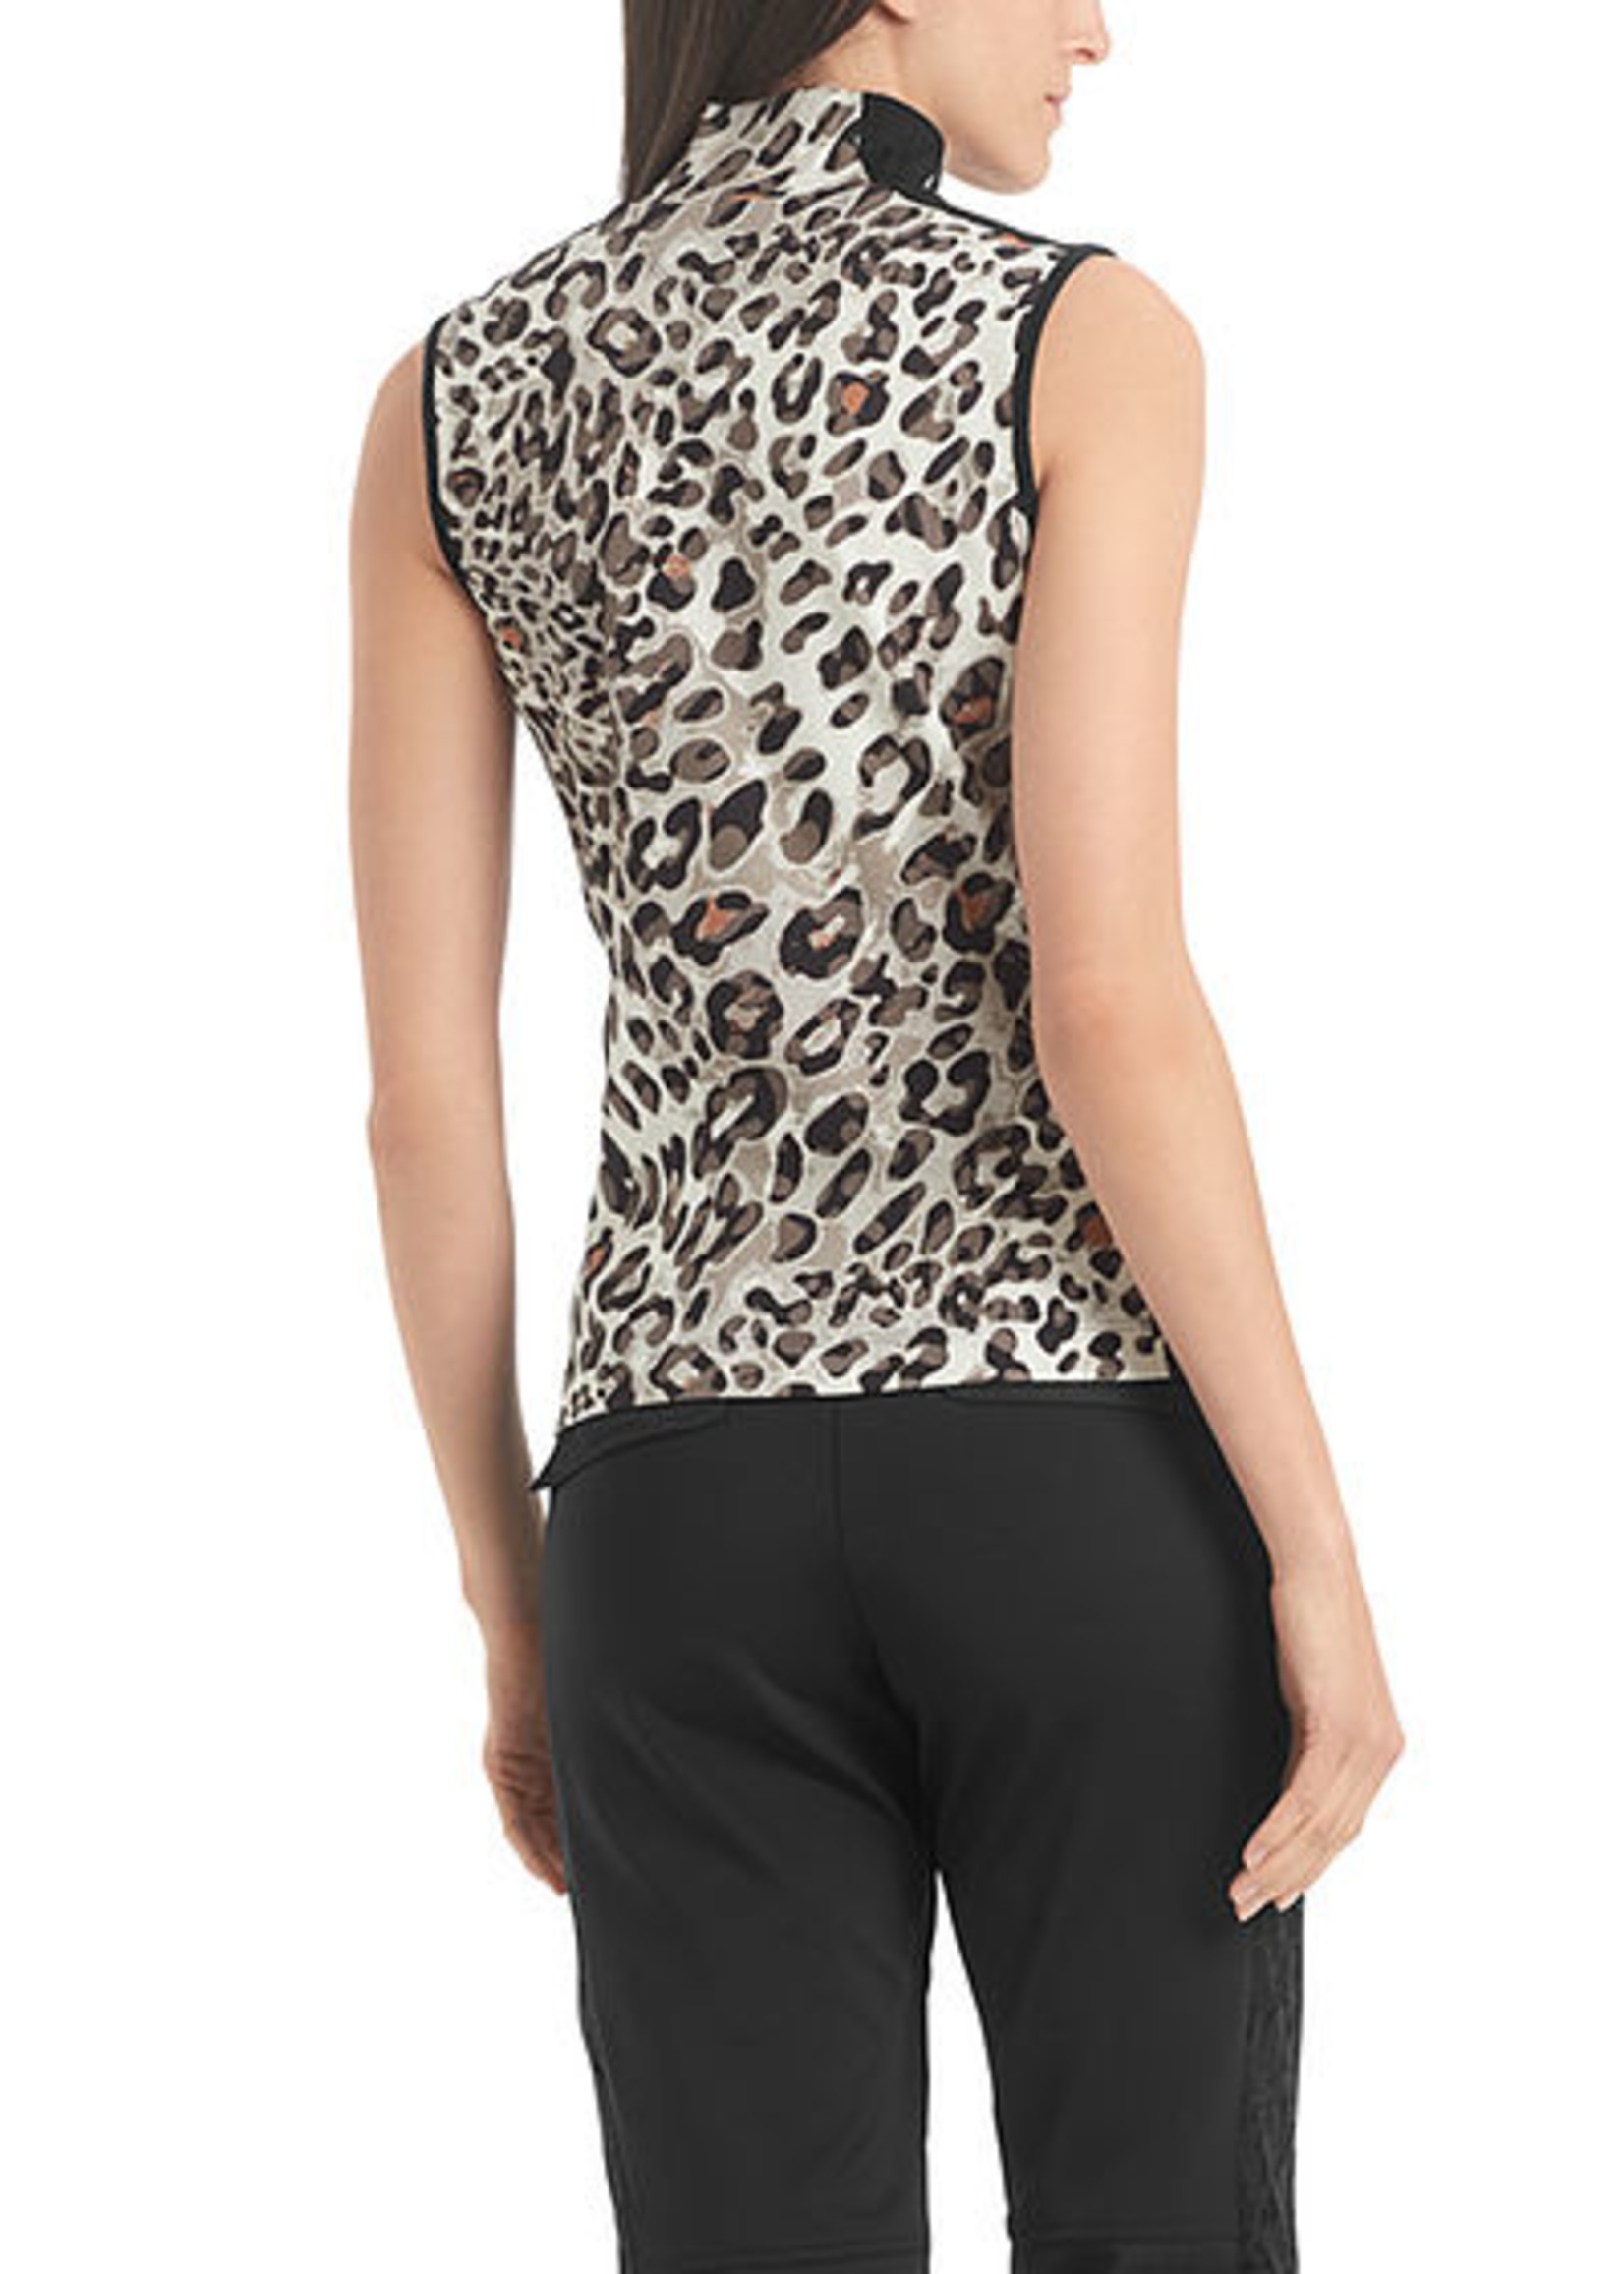 Marccain Sports Top RS 61.12 J31 light stone